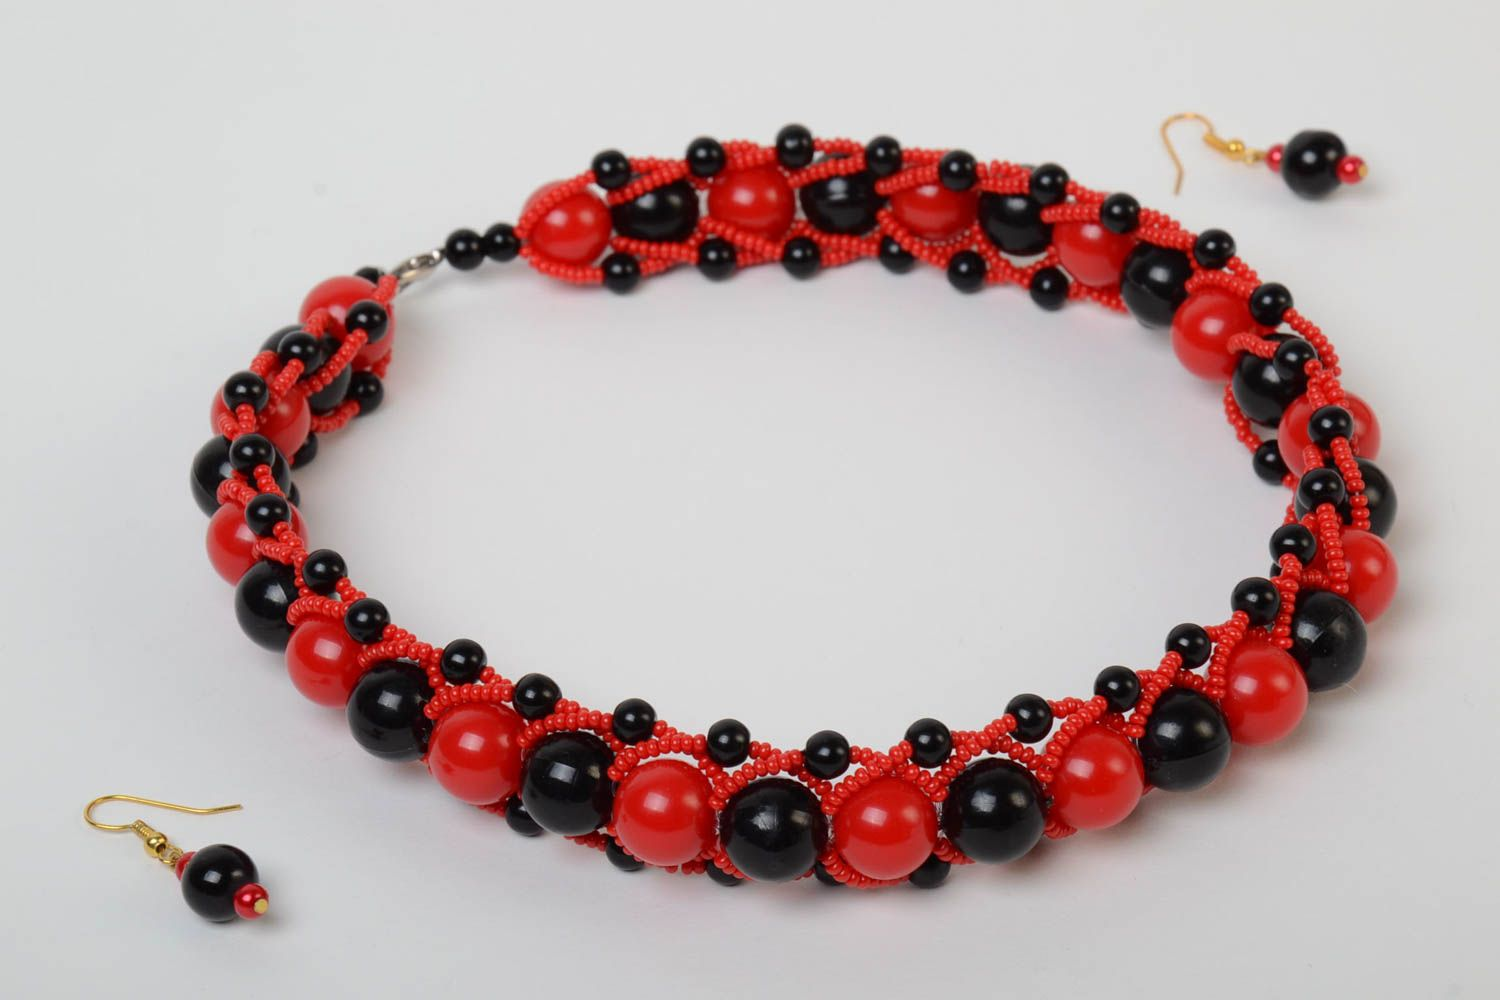 Red and black handmade designer beaded jewelry set 2 pieces unusual earrings and necklace photo 2